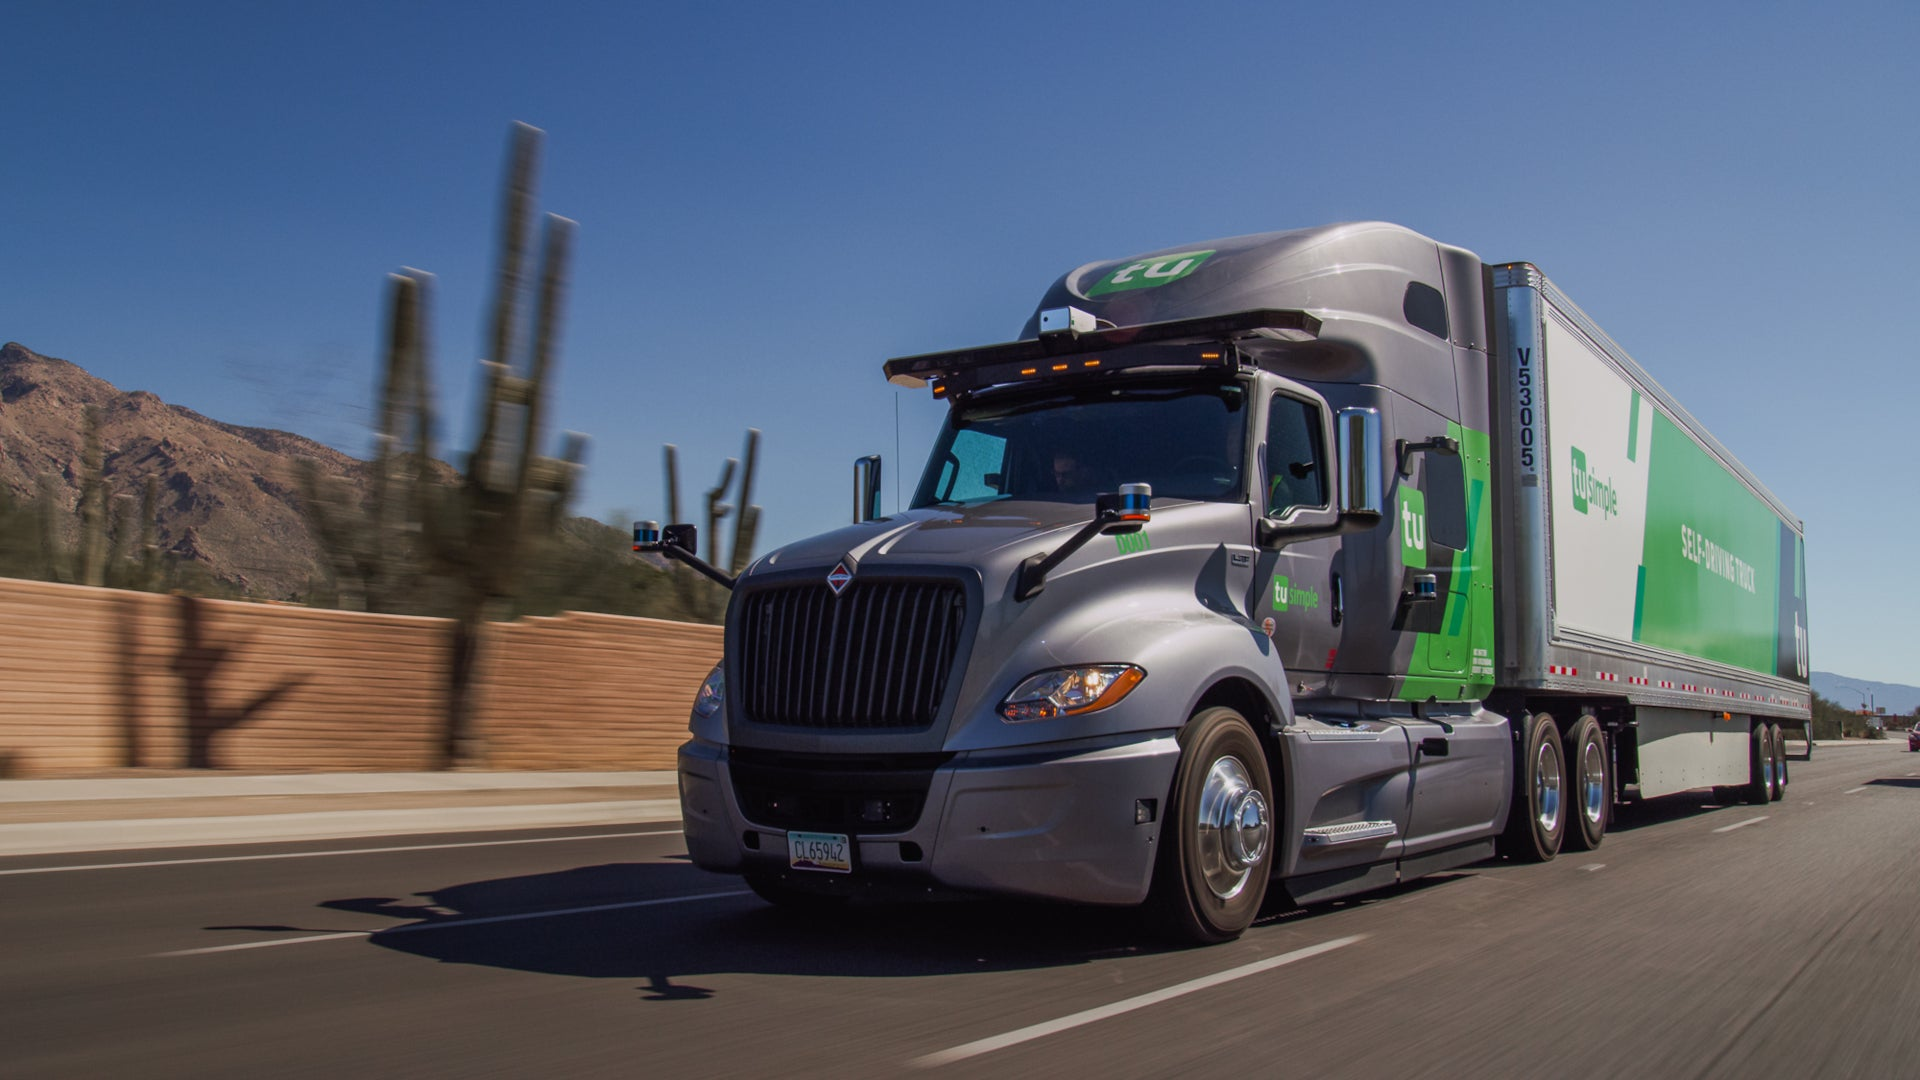 Self-Driving Semi-Truck Completes 950-Mile Delivery 10 Hours Faster Than a Human Trucker Could